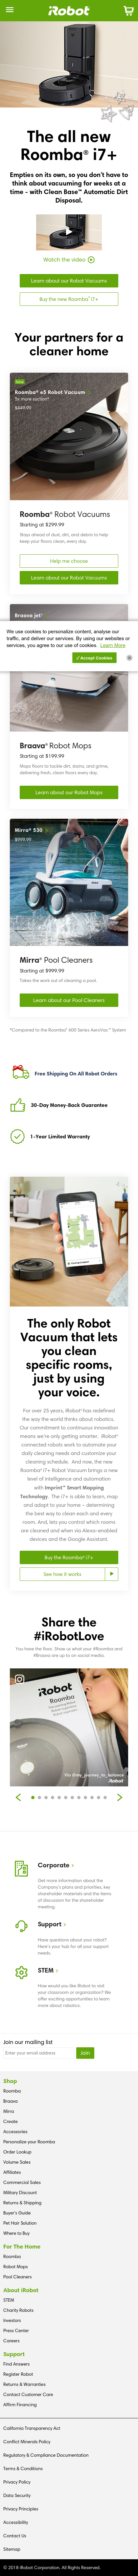 Example of Design for Home & Garden, Home Appliances, Mobile Landing Page by irobot.com | Mobile Landing Page Design